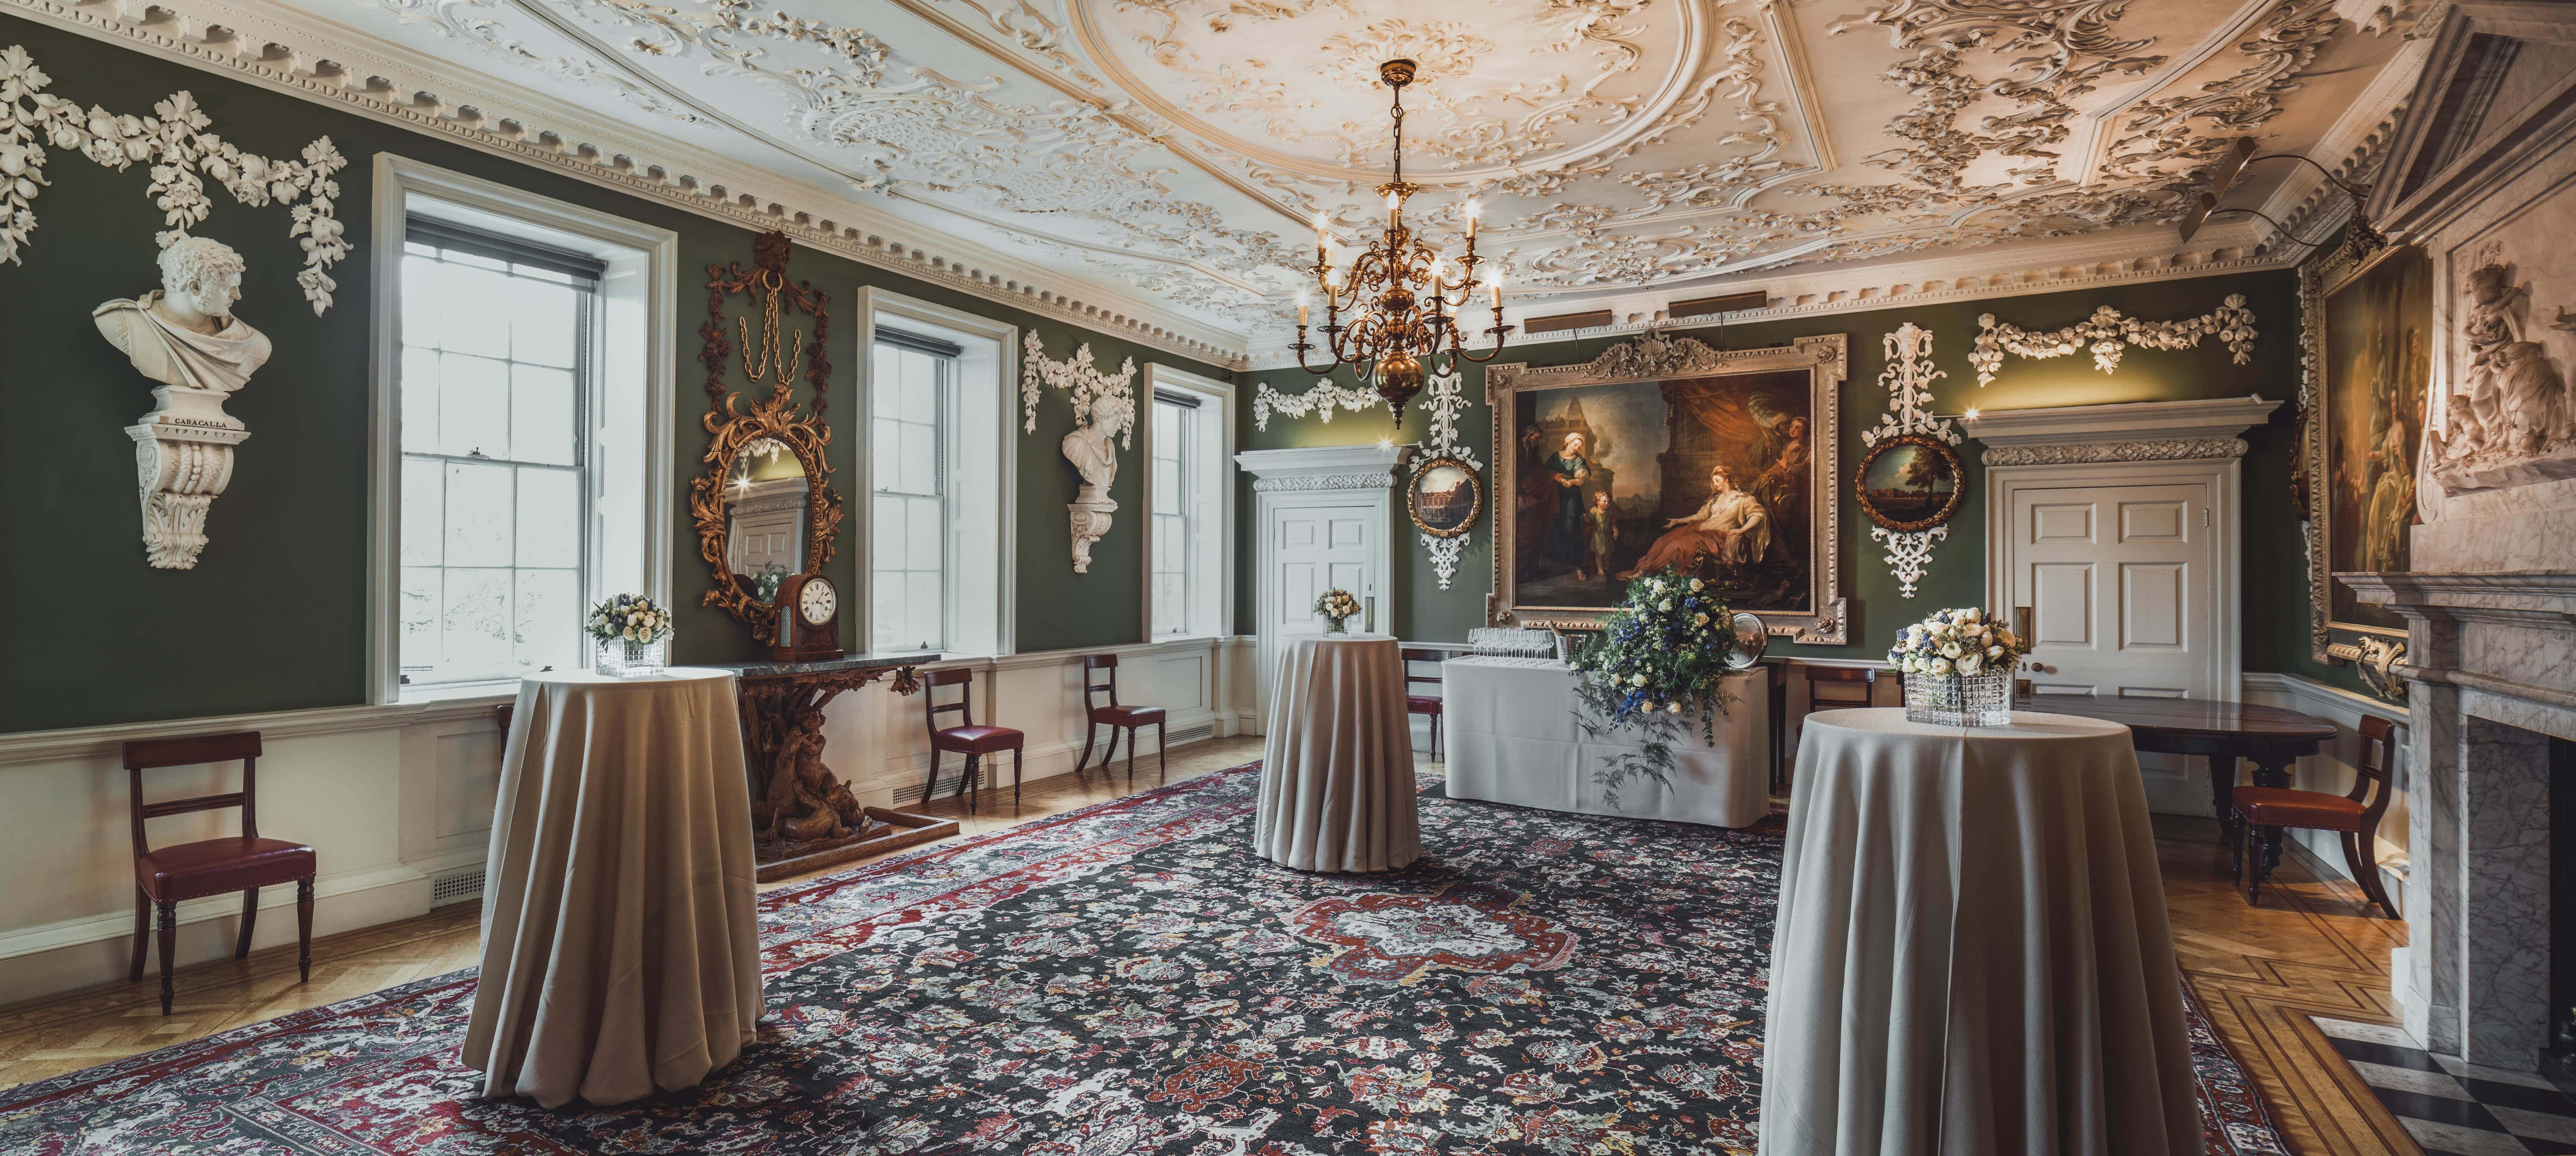 Exclusive Hire, The Foundling Museum